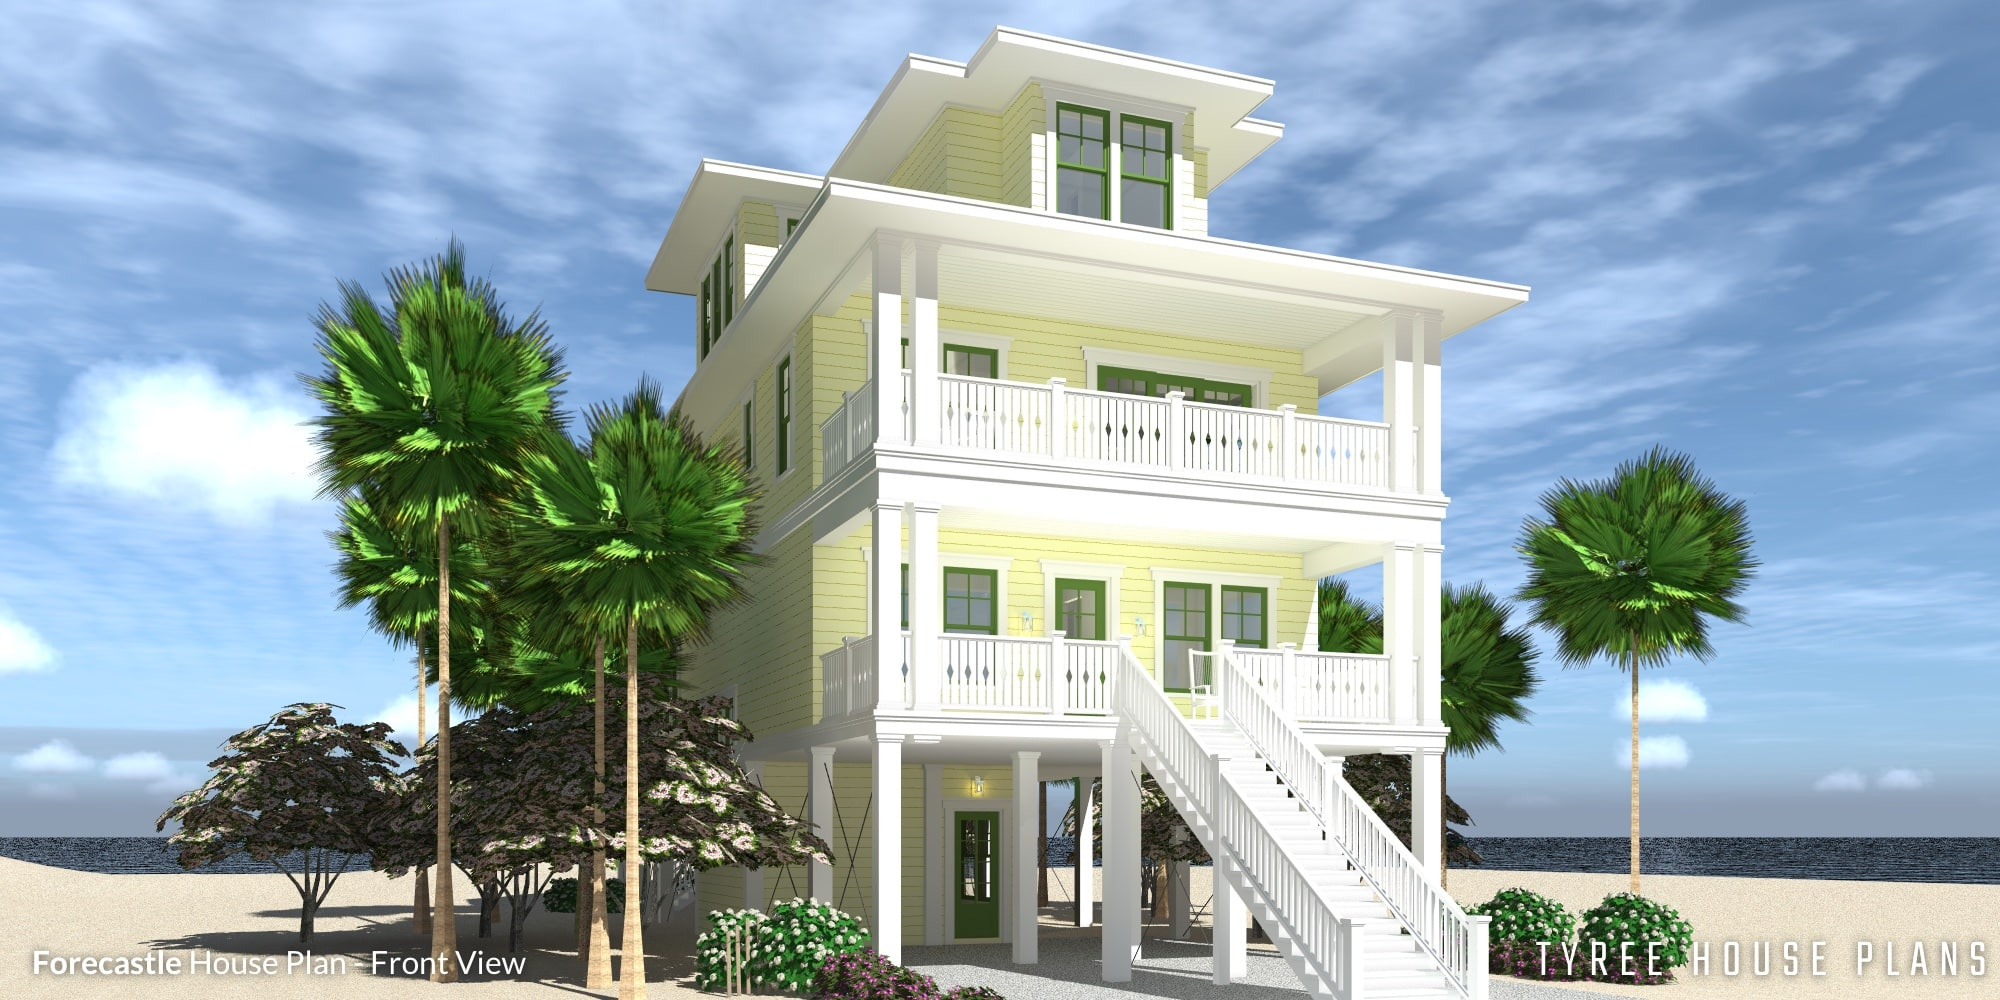 Front View - Forecastle House Plan by Tyree House Plans